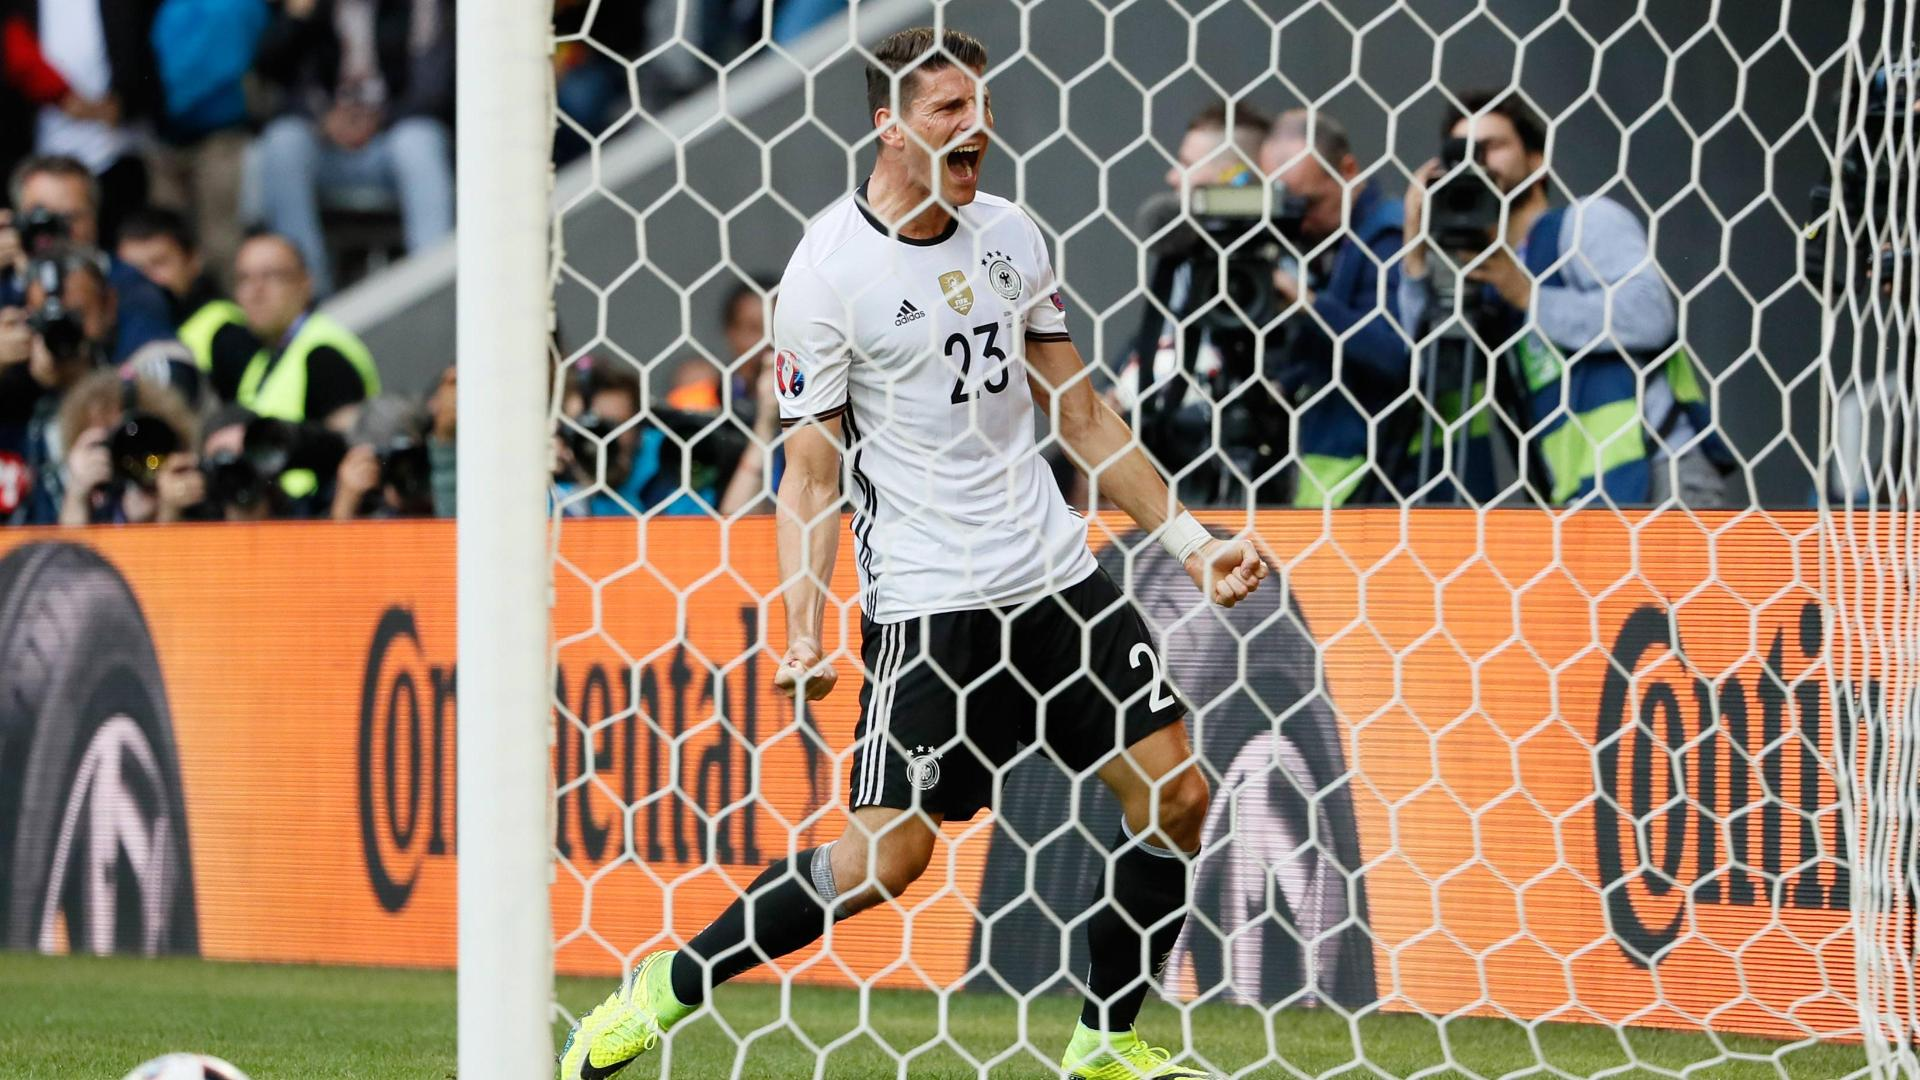 Gomez's strike extends Germany's lead